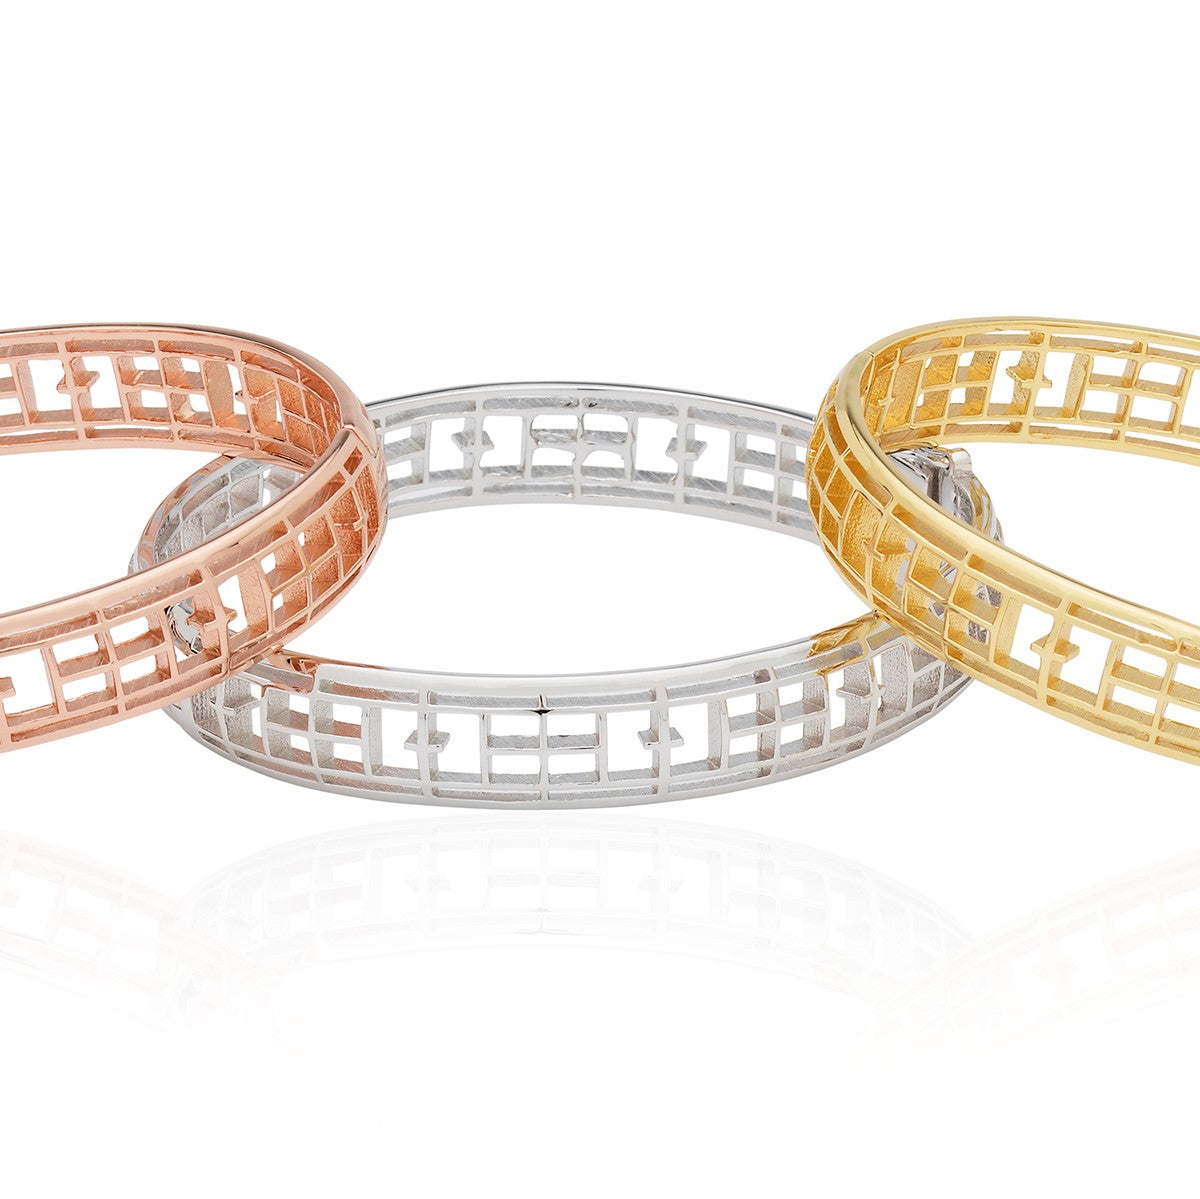 Calling the Lines Oval Bangle